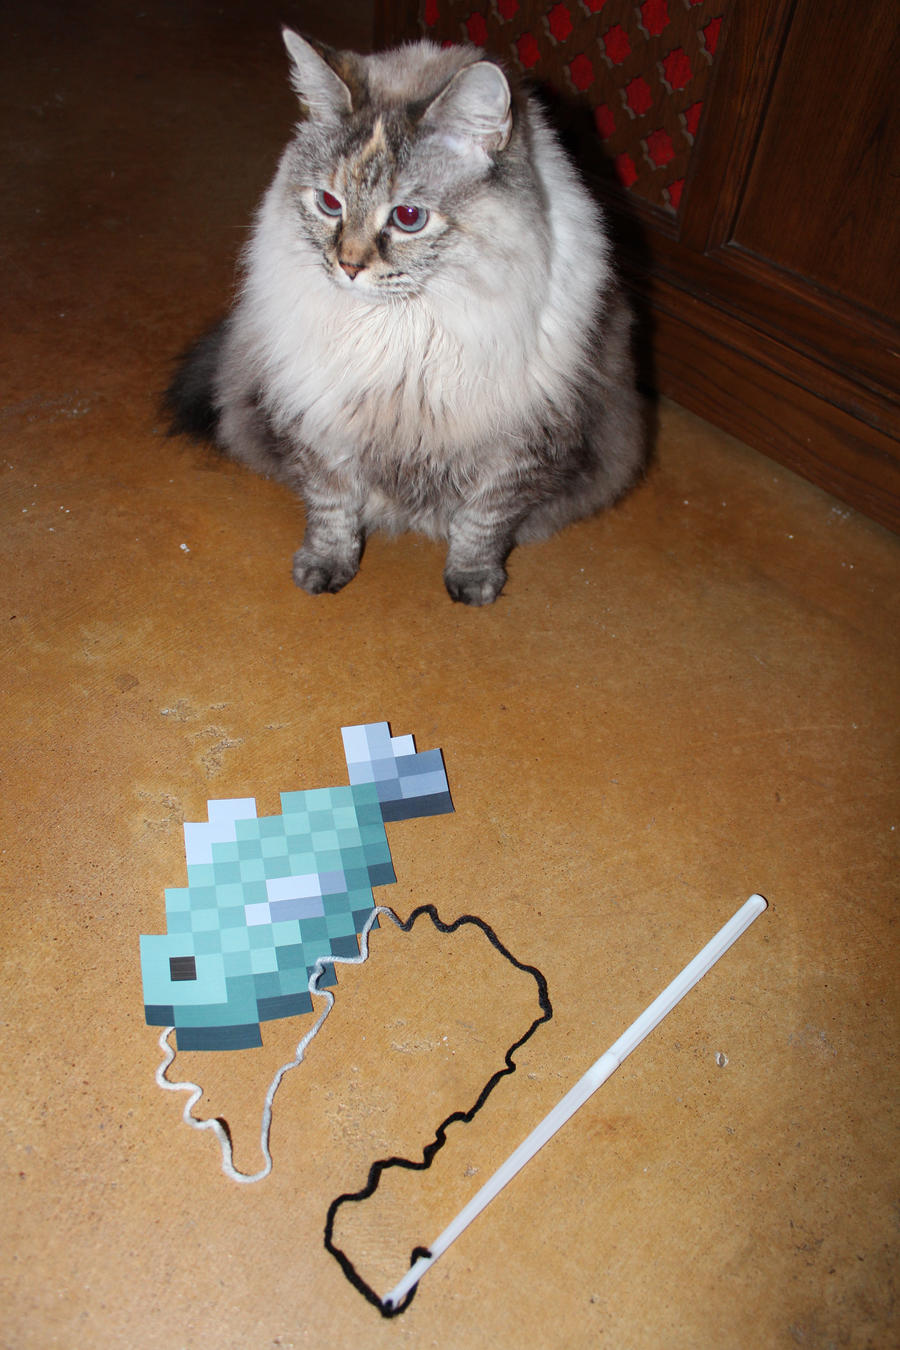 Good Wallpaper Minecraft Cats - nibbles_and_her_minecraft_fish_toy_by_charmandersflame-d4noljd  Image_43727.jpg